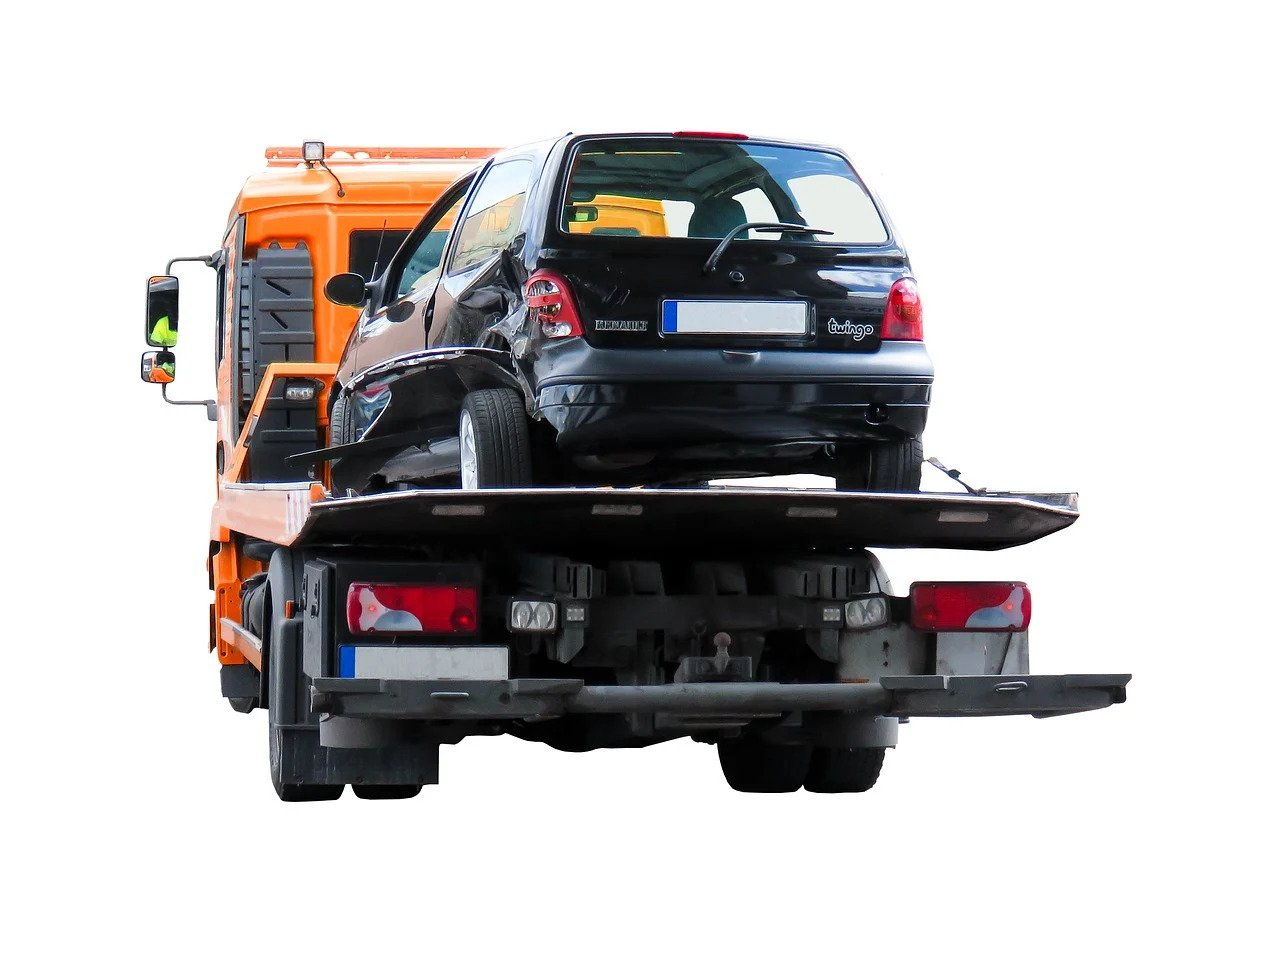 Contact Fullerton Towing Pros